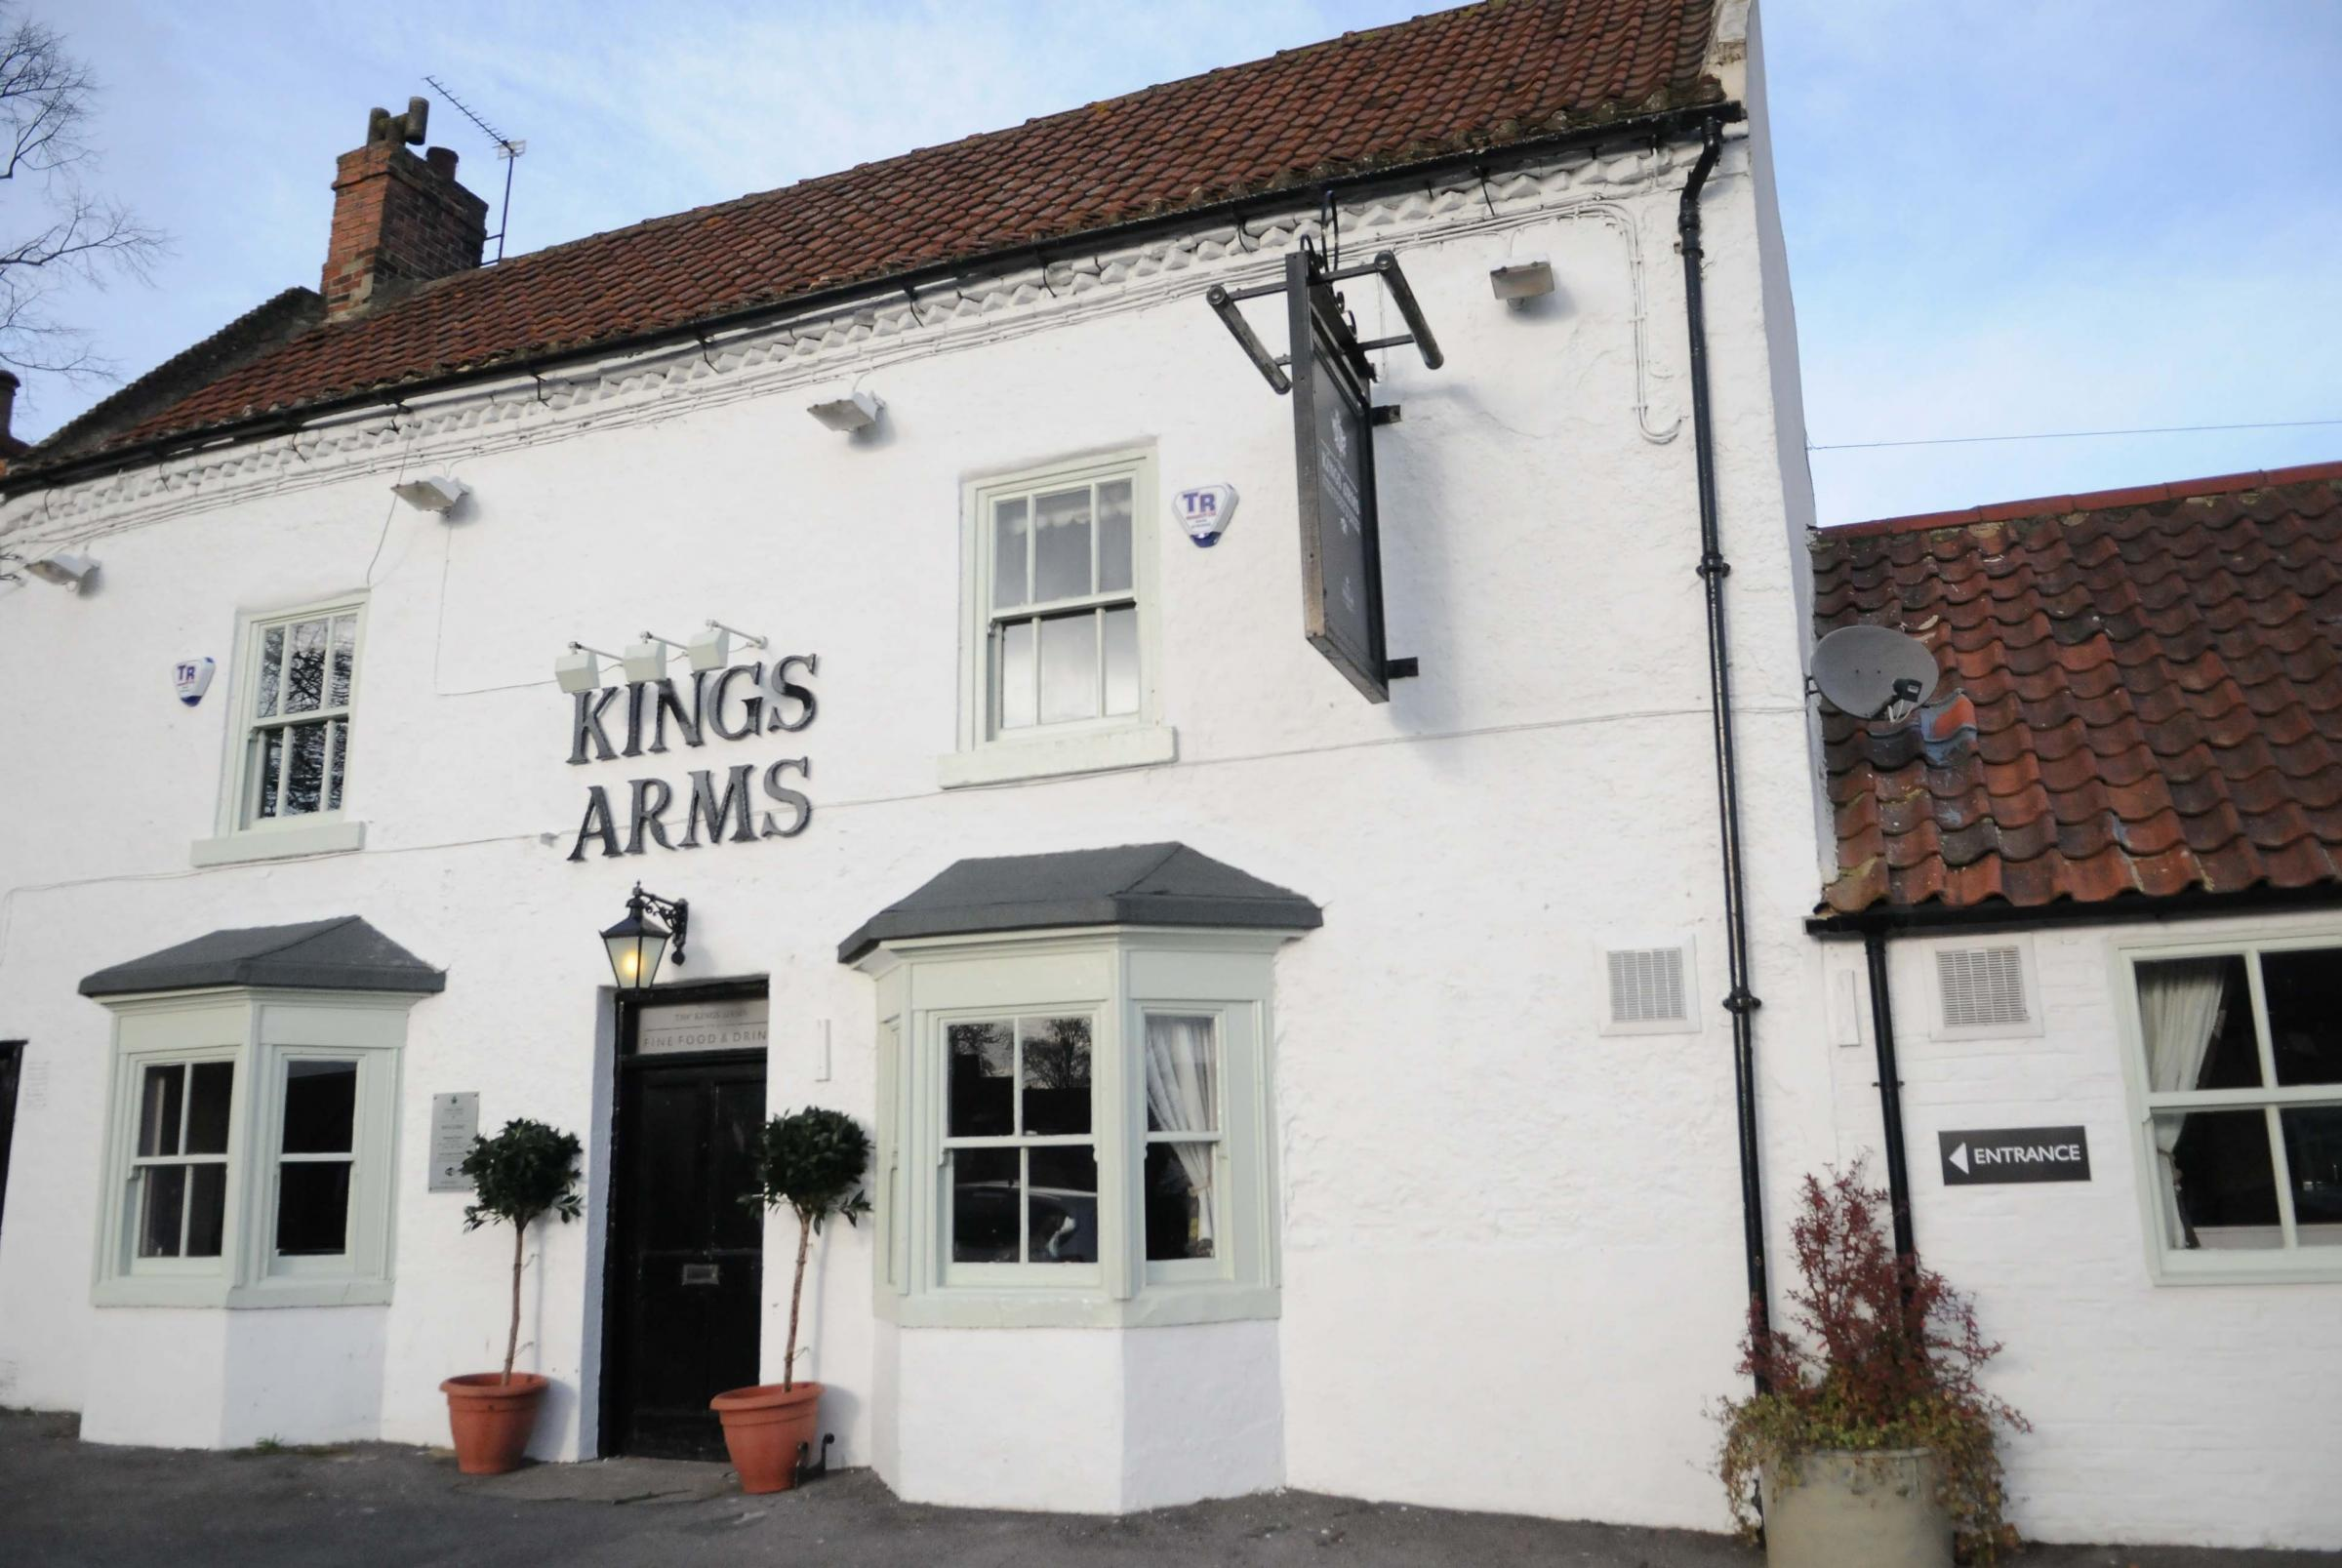 The Kings Arms, in Great Stainton, near the proposed houses